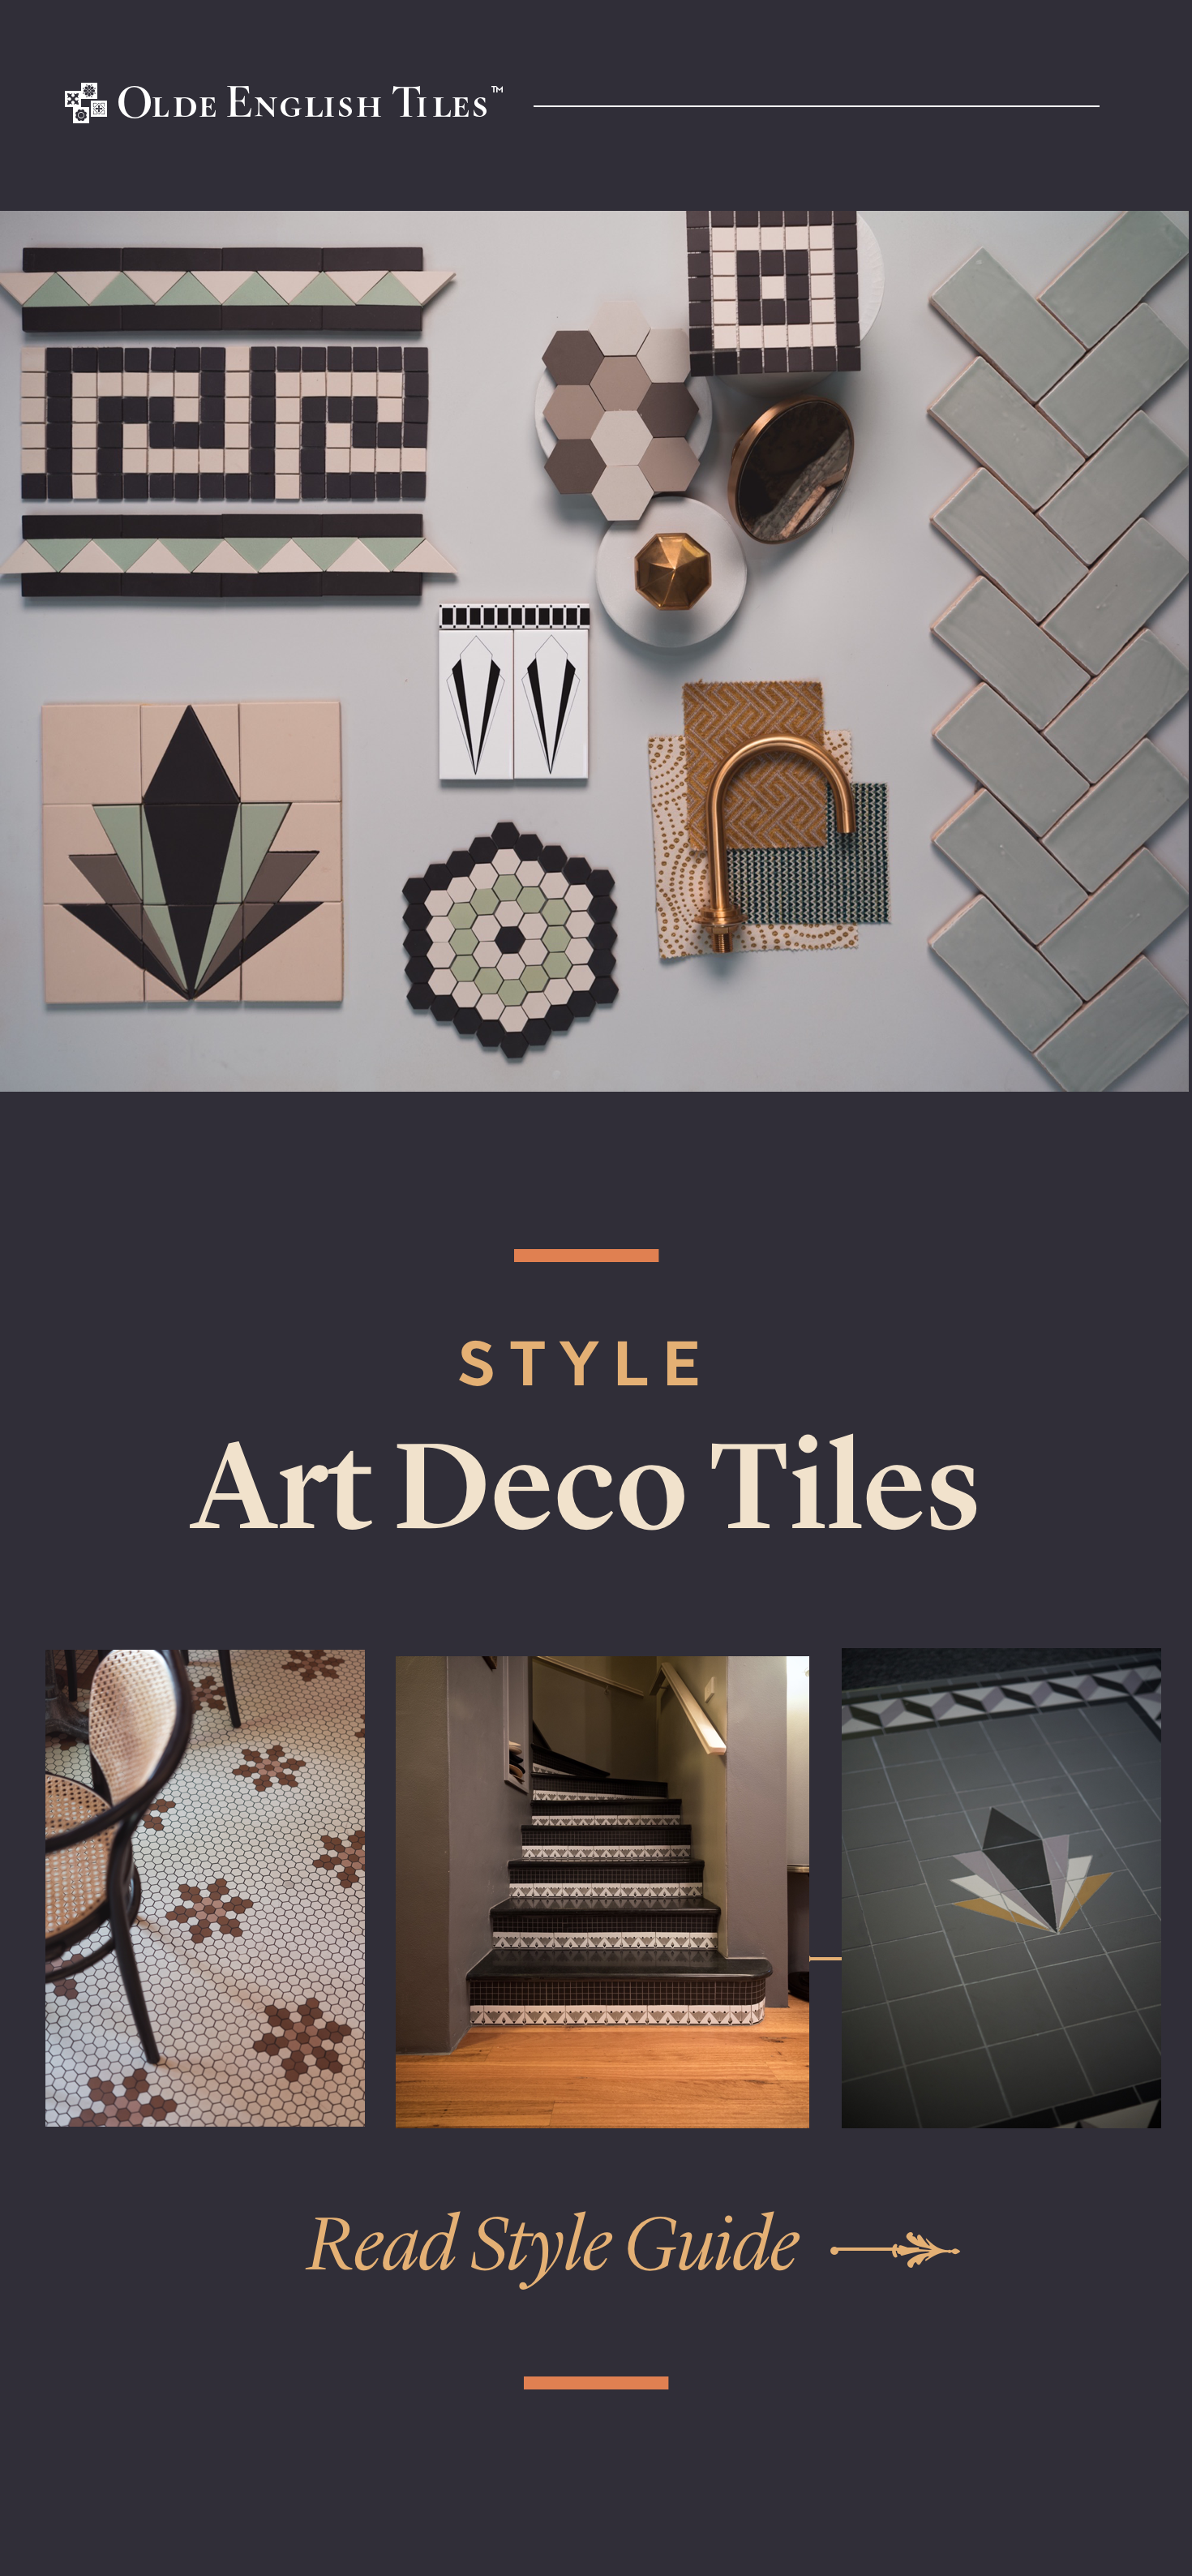 A great way to infuse Art Deco charm into a space is through period inspired tiles paired with conte